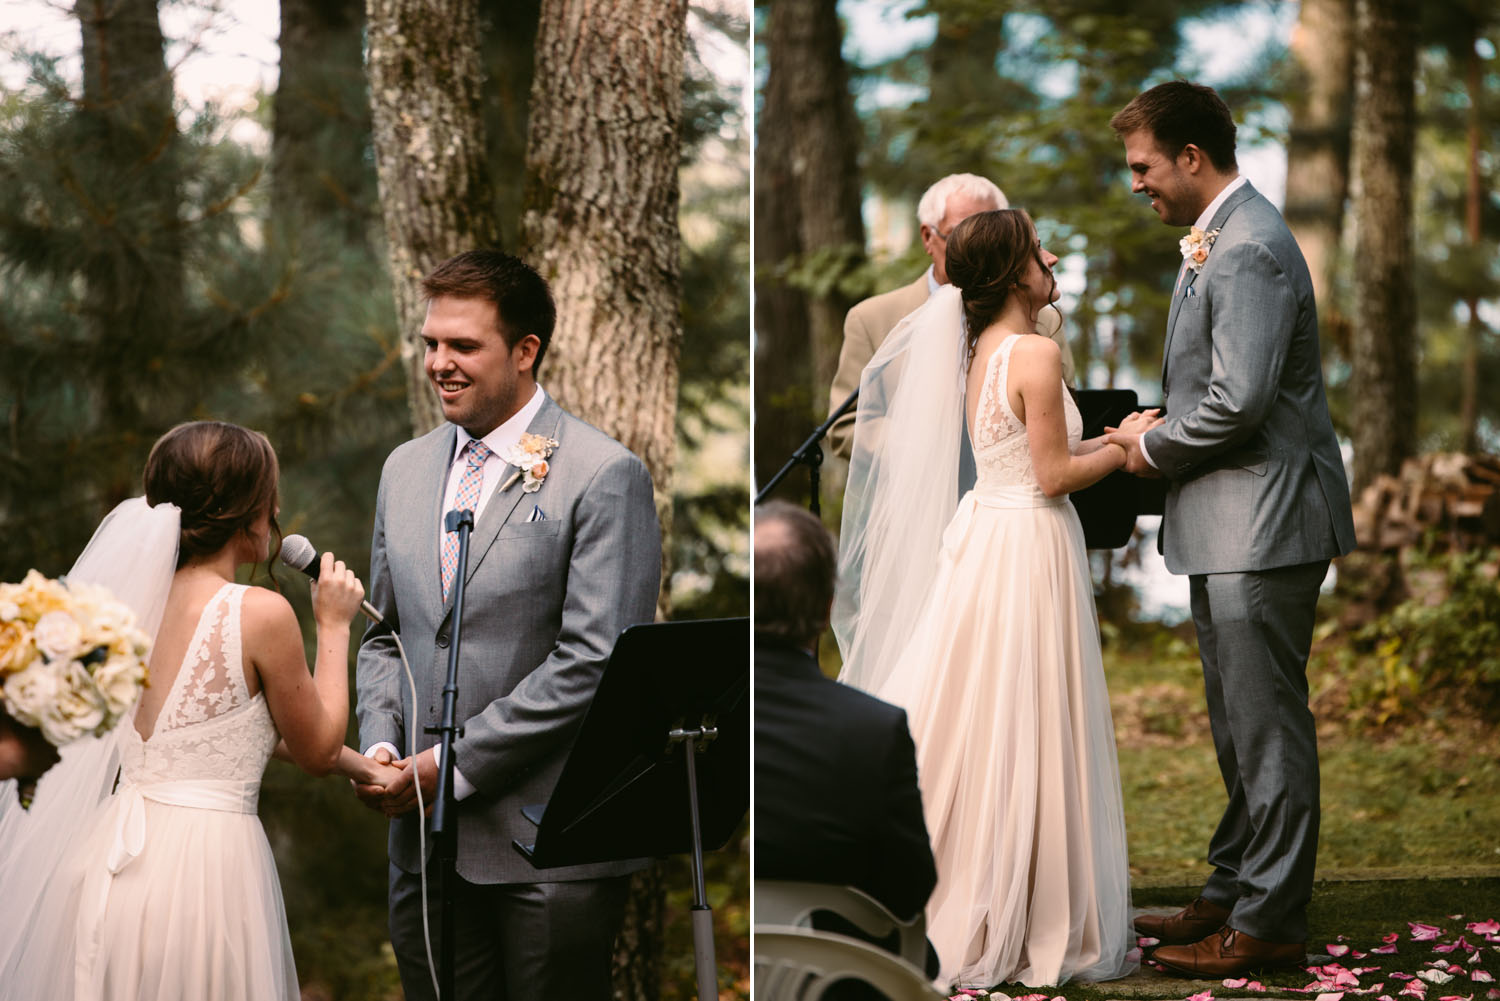 backyard-wedding-ceremony-photographer-minnesota.jpg